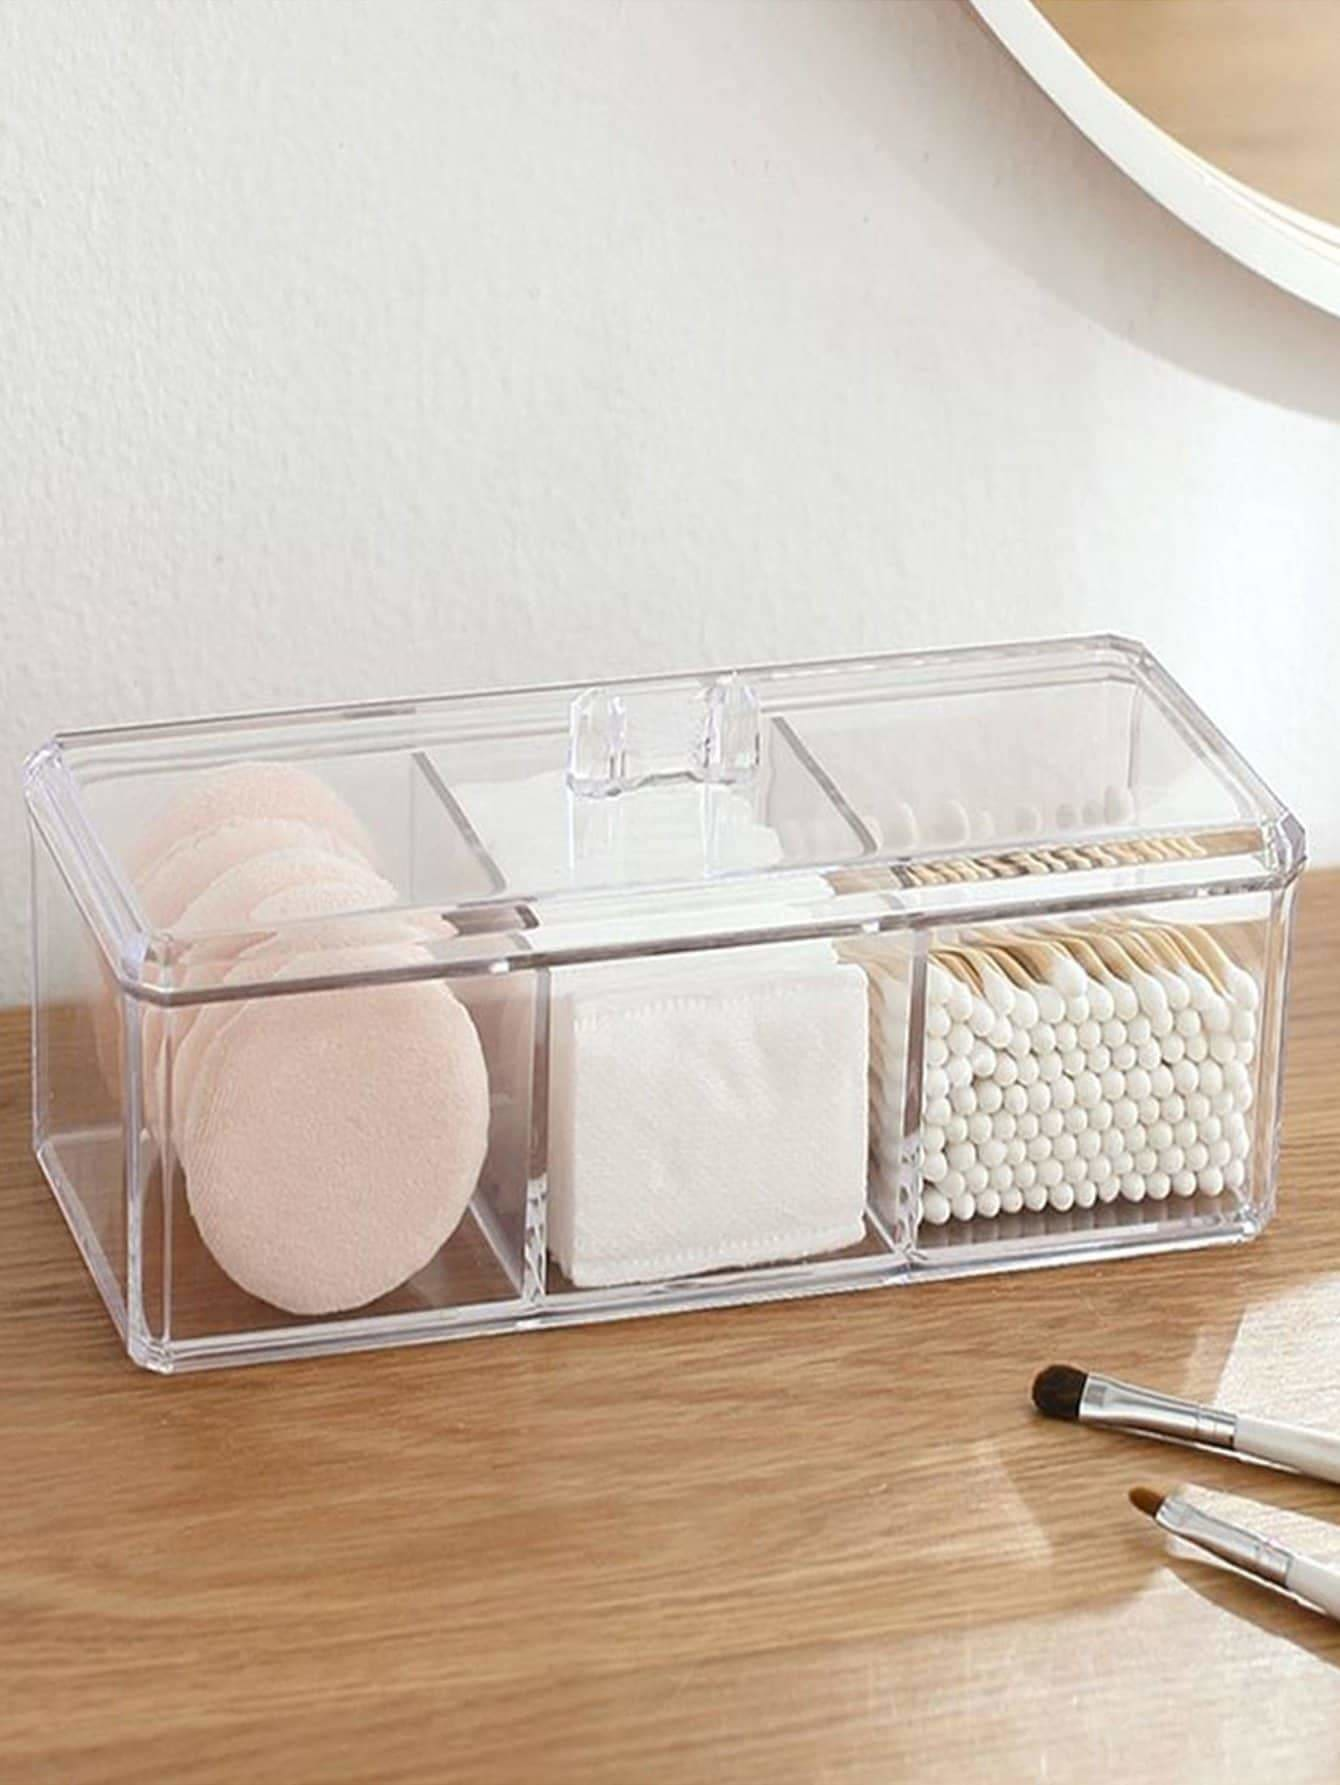 Clear Cosmetic Storage Box - Storage & Organization